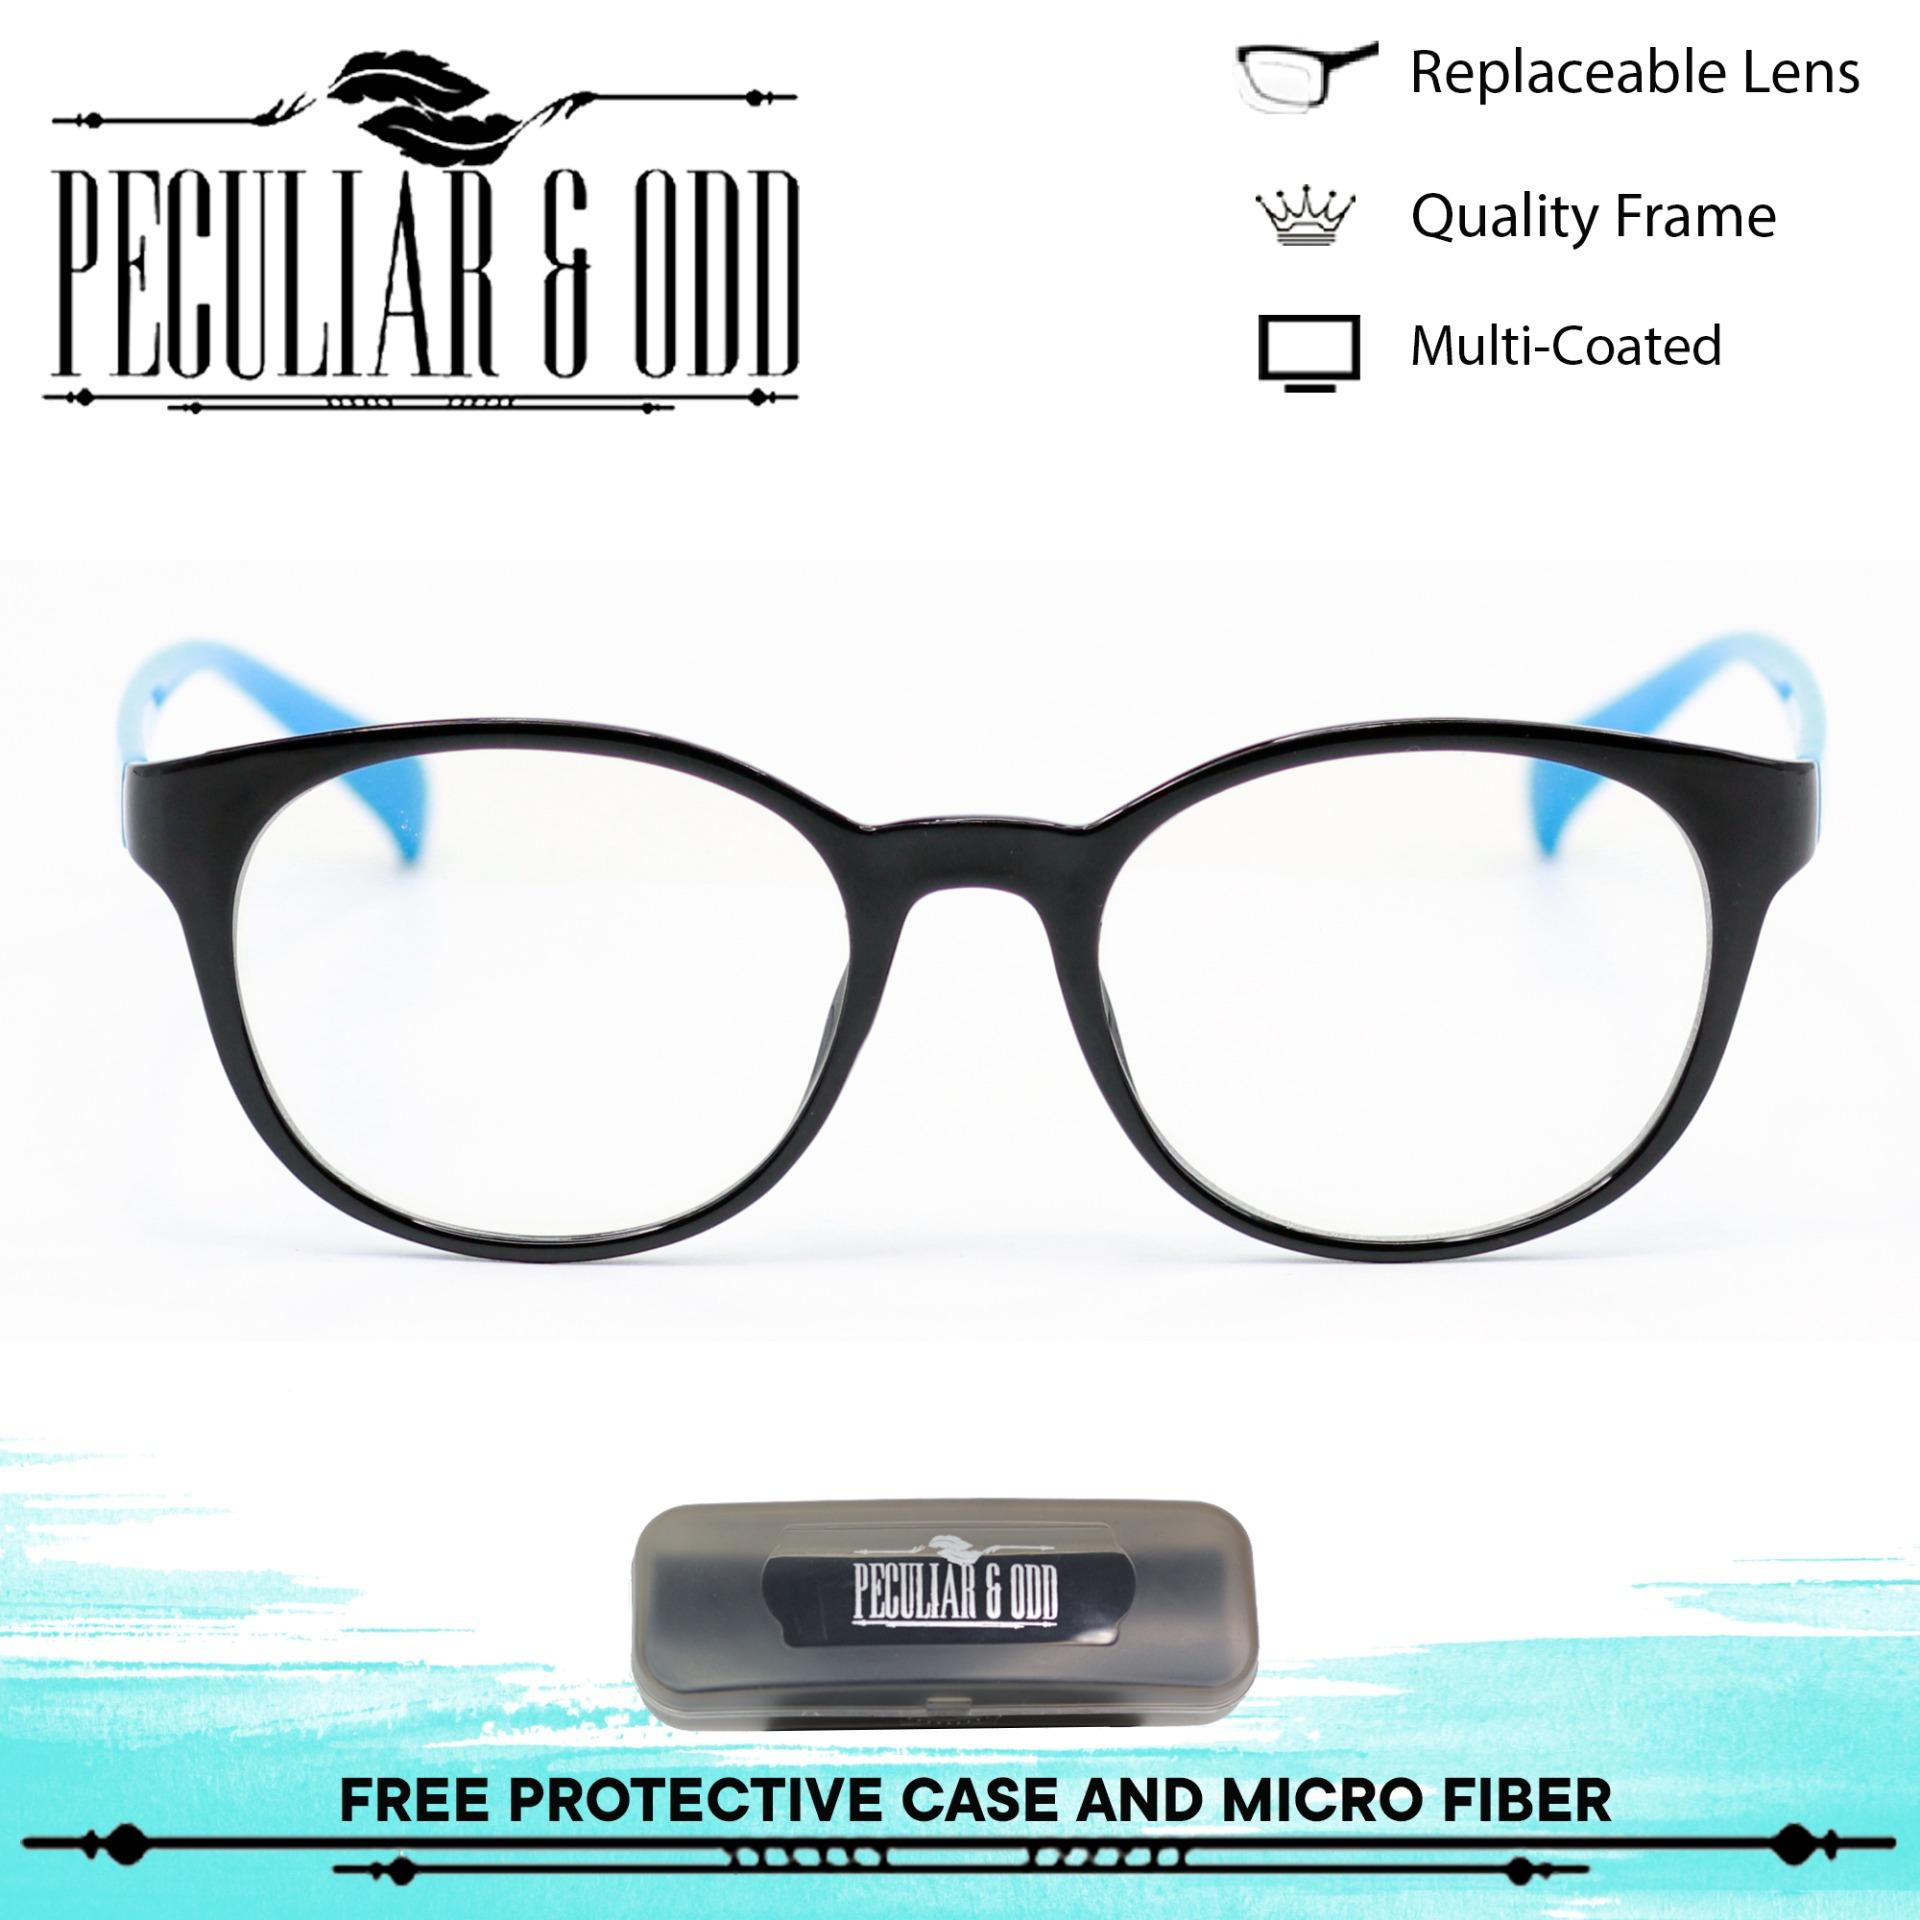 Peculiar Optical Round Lightweigth Spectacles S493 BlackBlue Multi-coated  Computer Replaceable Blue Lens Eyewear Unisex 667a46499226